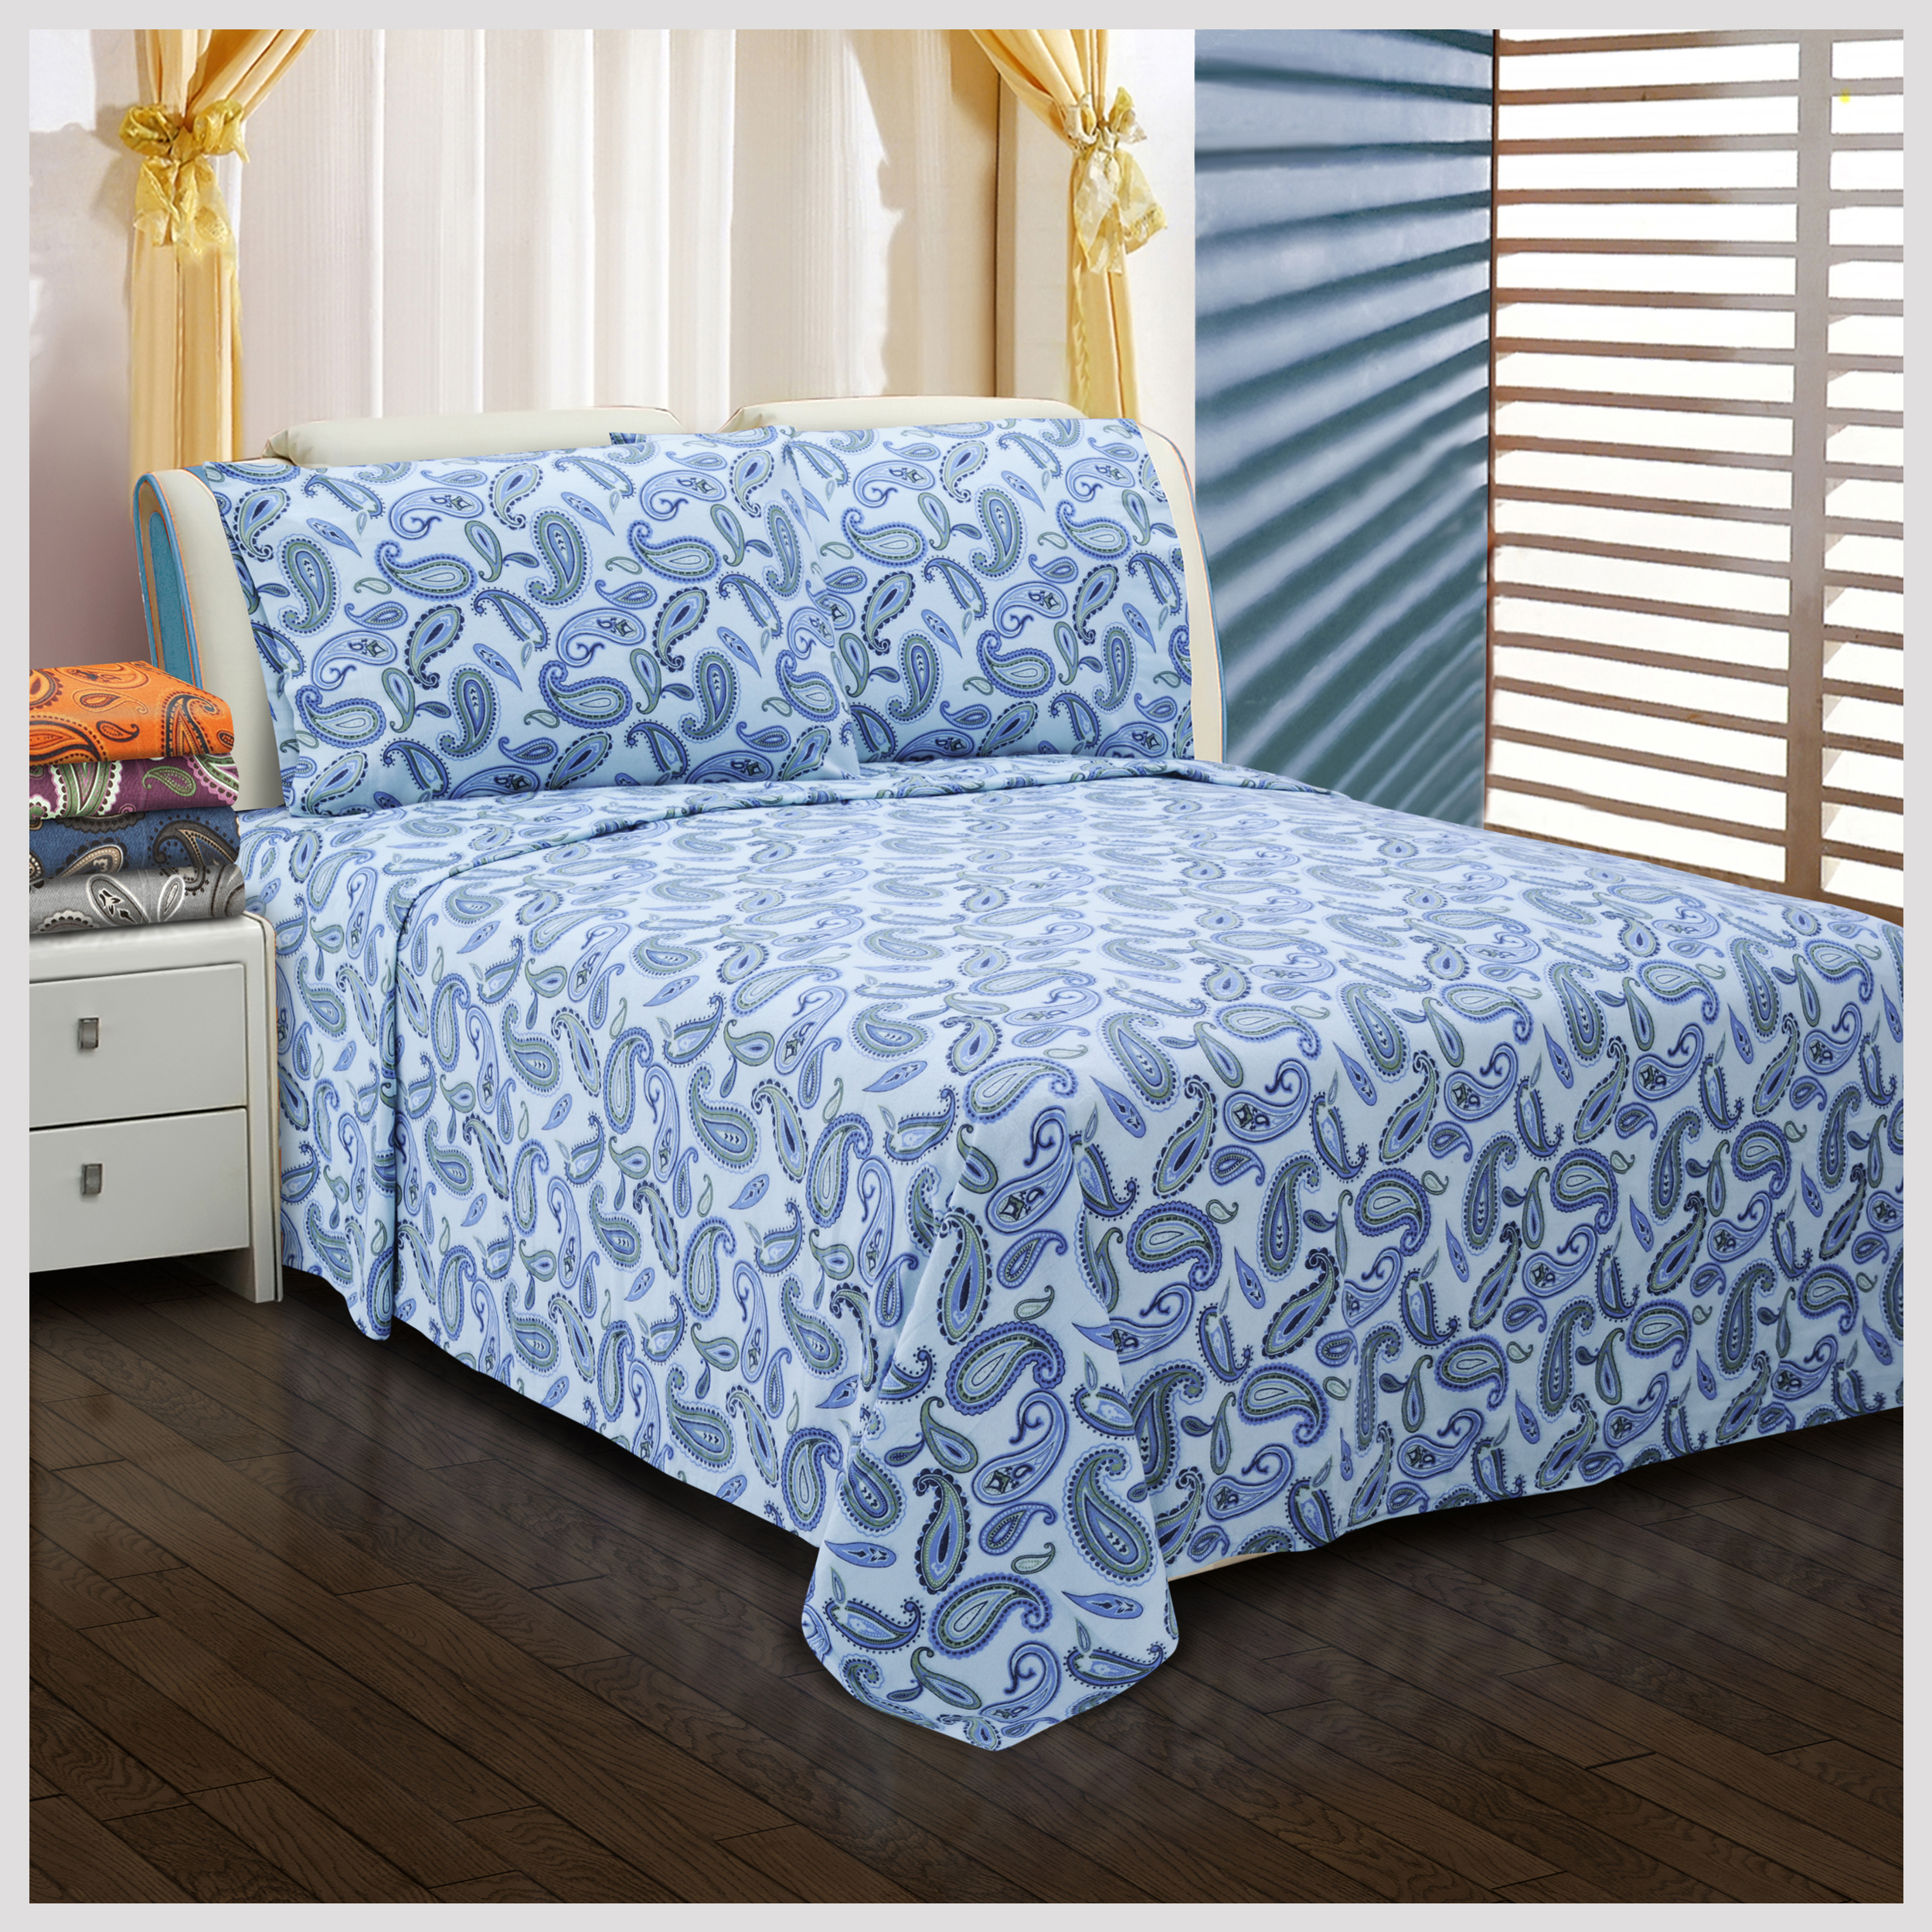 Superior Flannel Cotton Sheet Set - Full - Light Blue